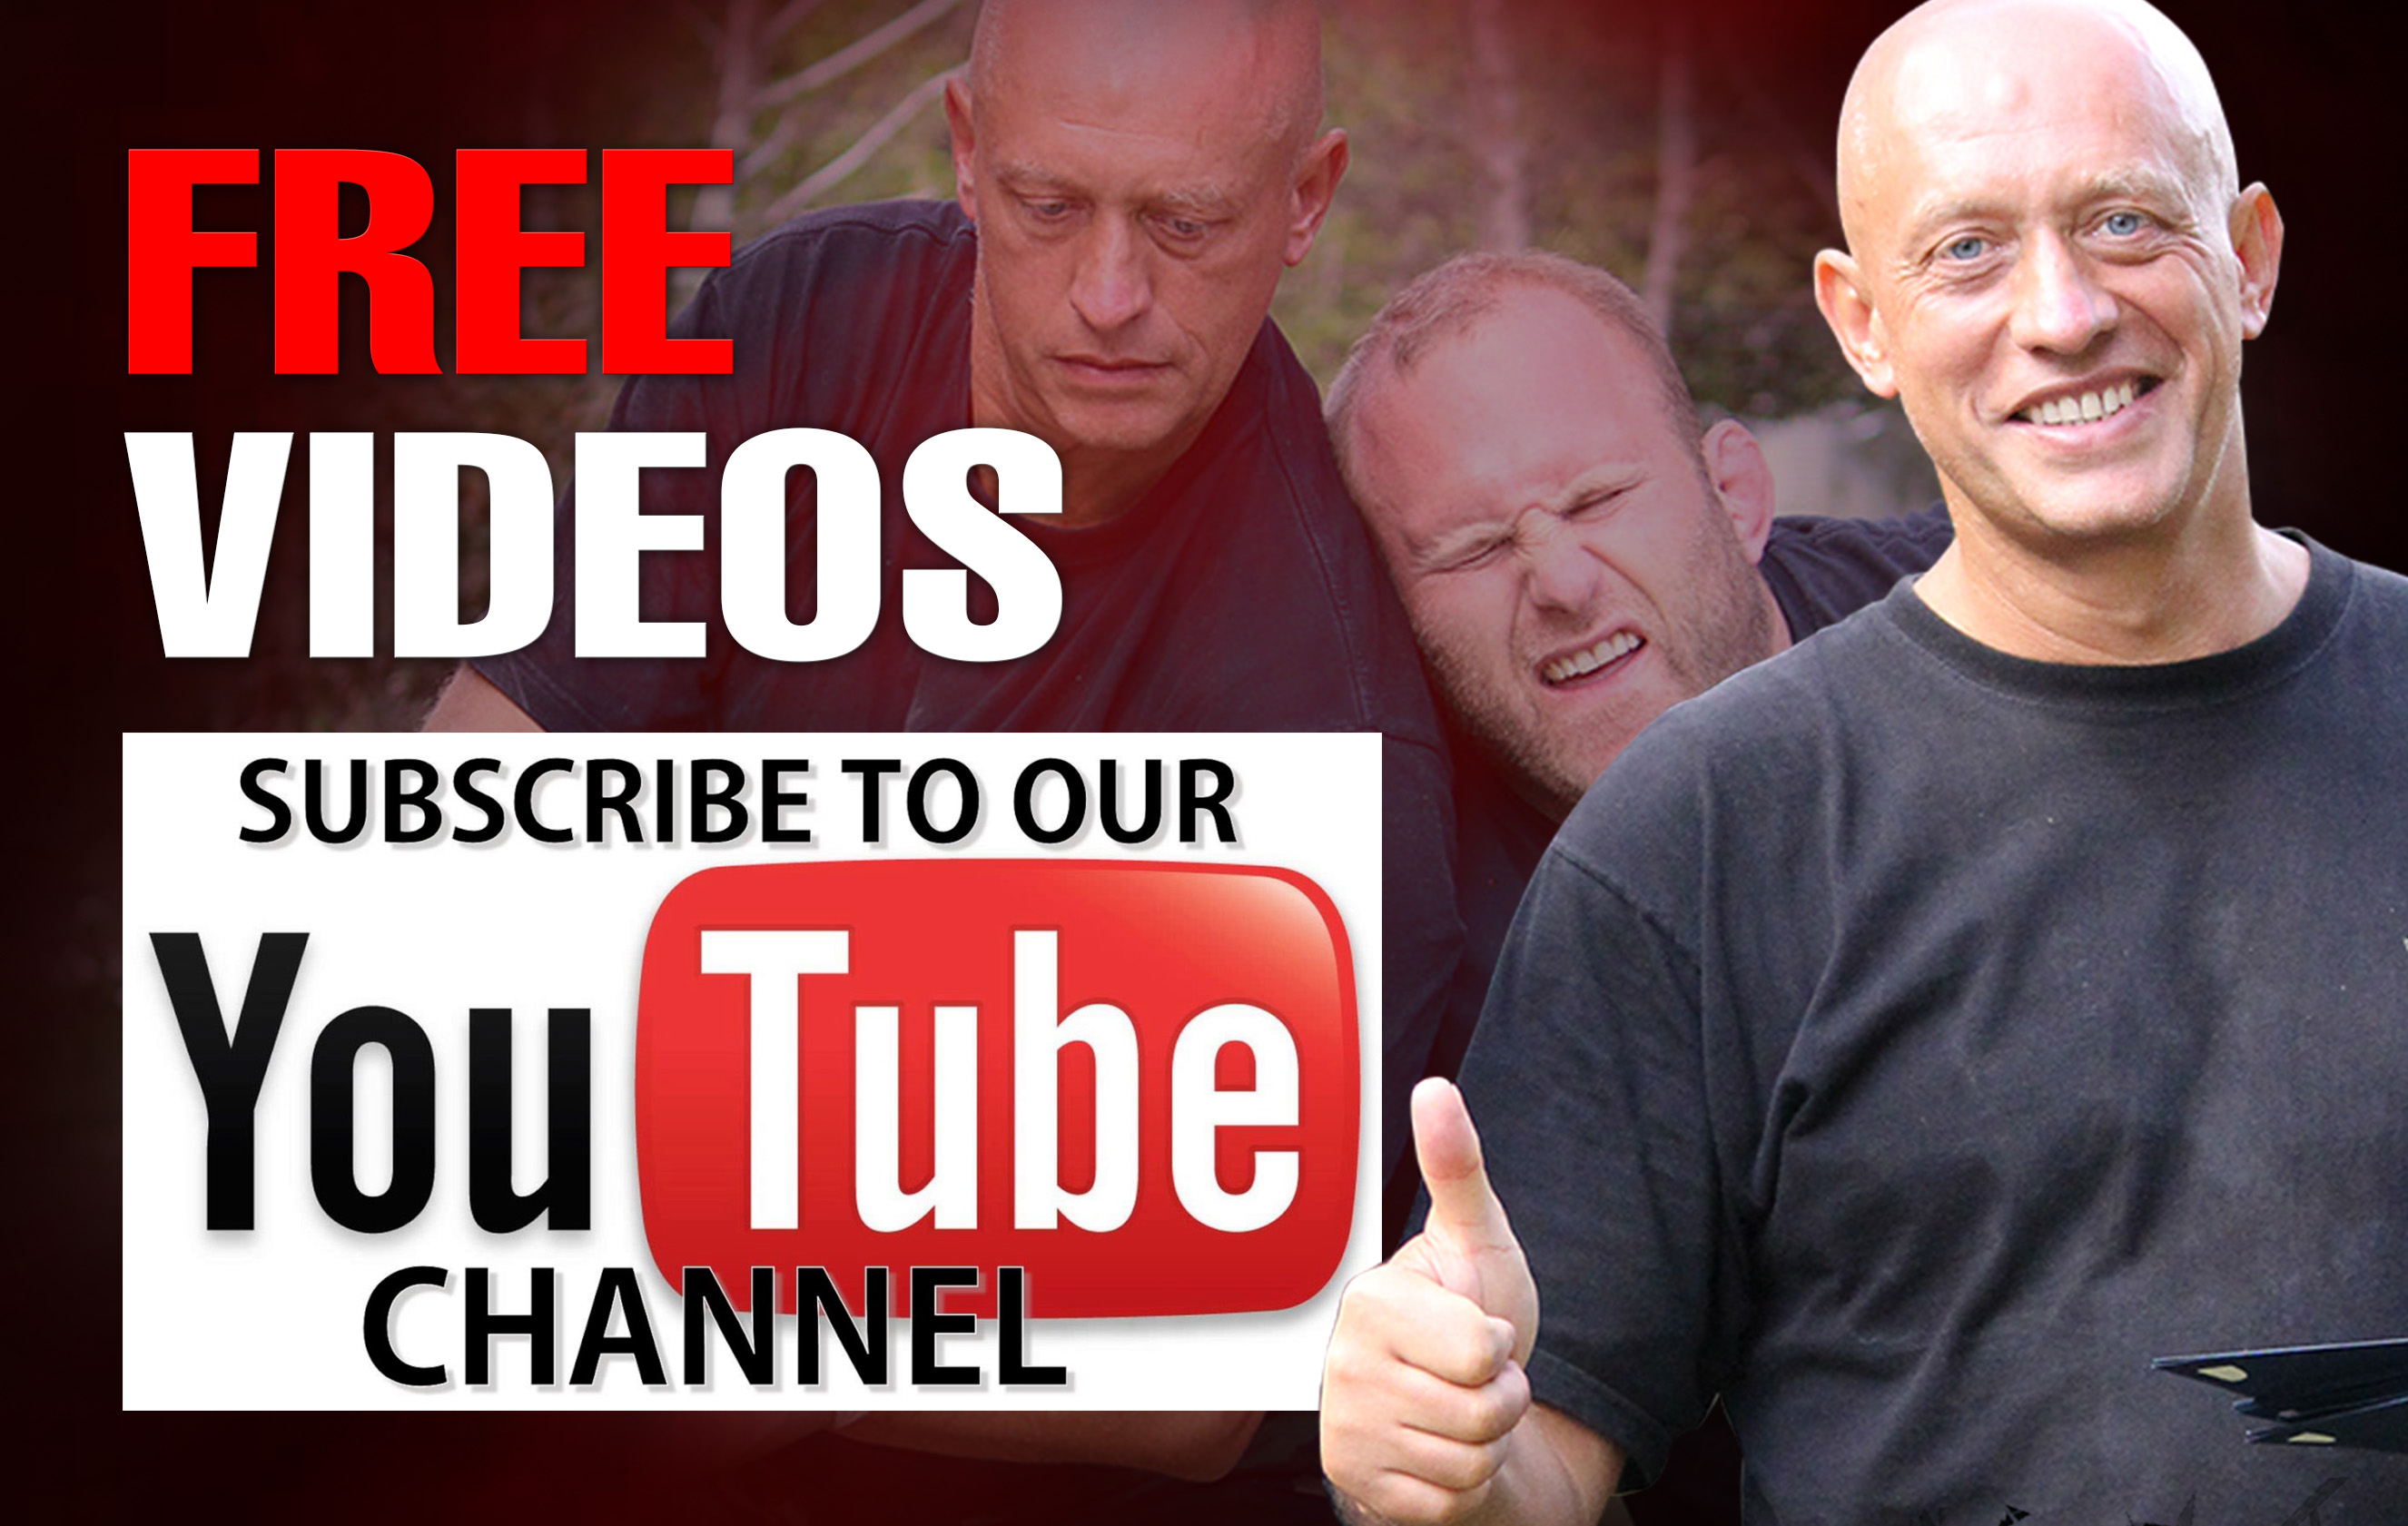 Subsribe to Systema Spetsnaz YouTube - Free Russian Martial Arts Videos